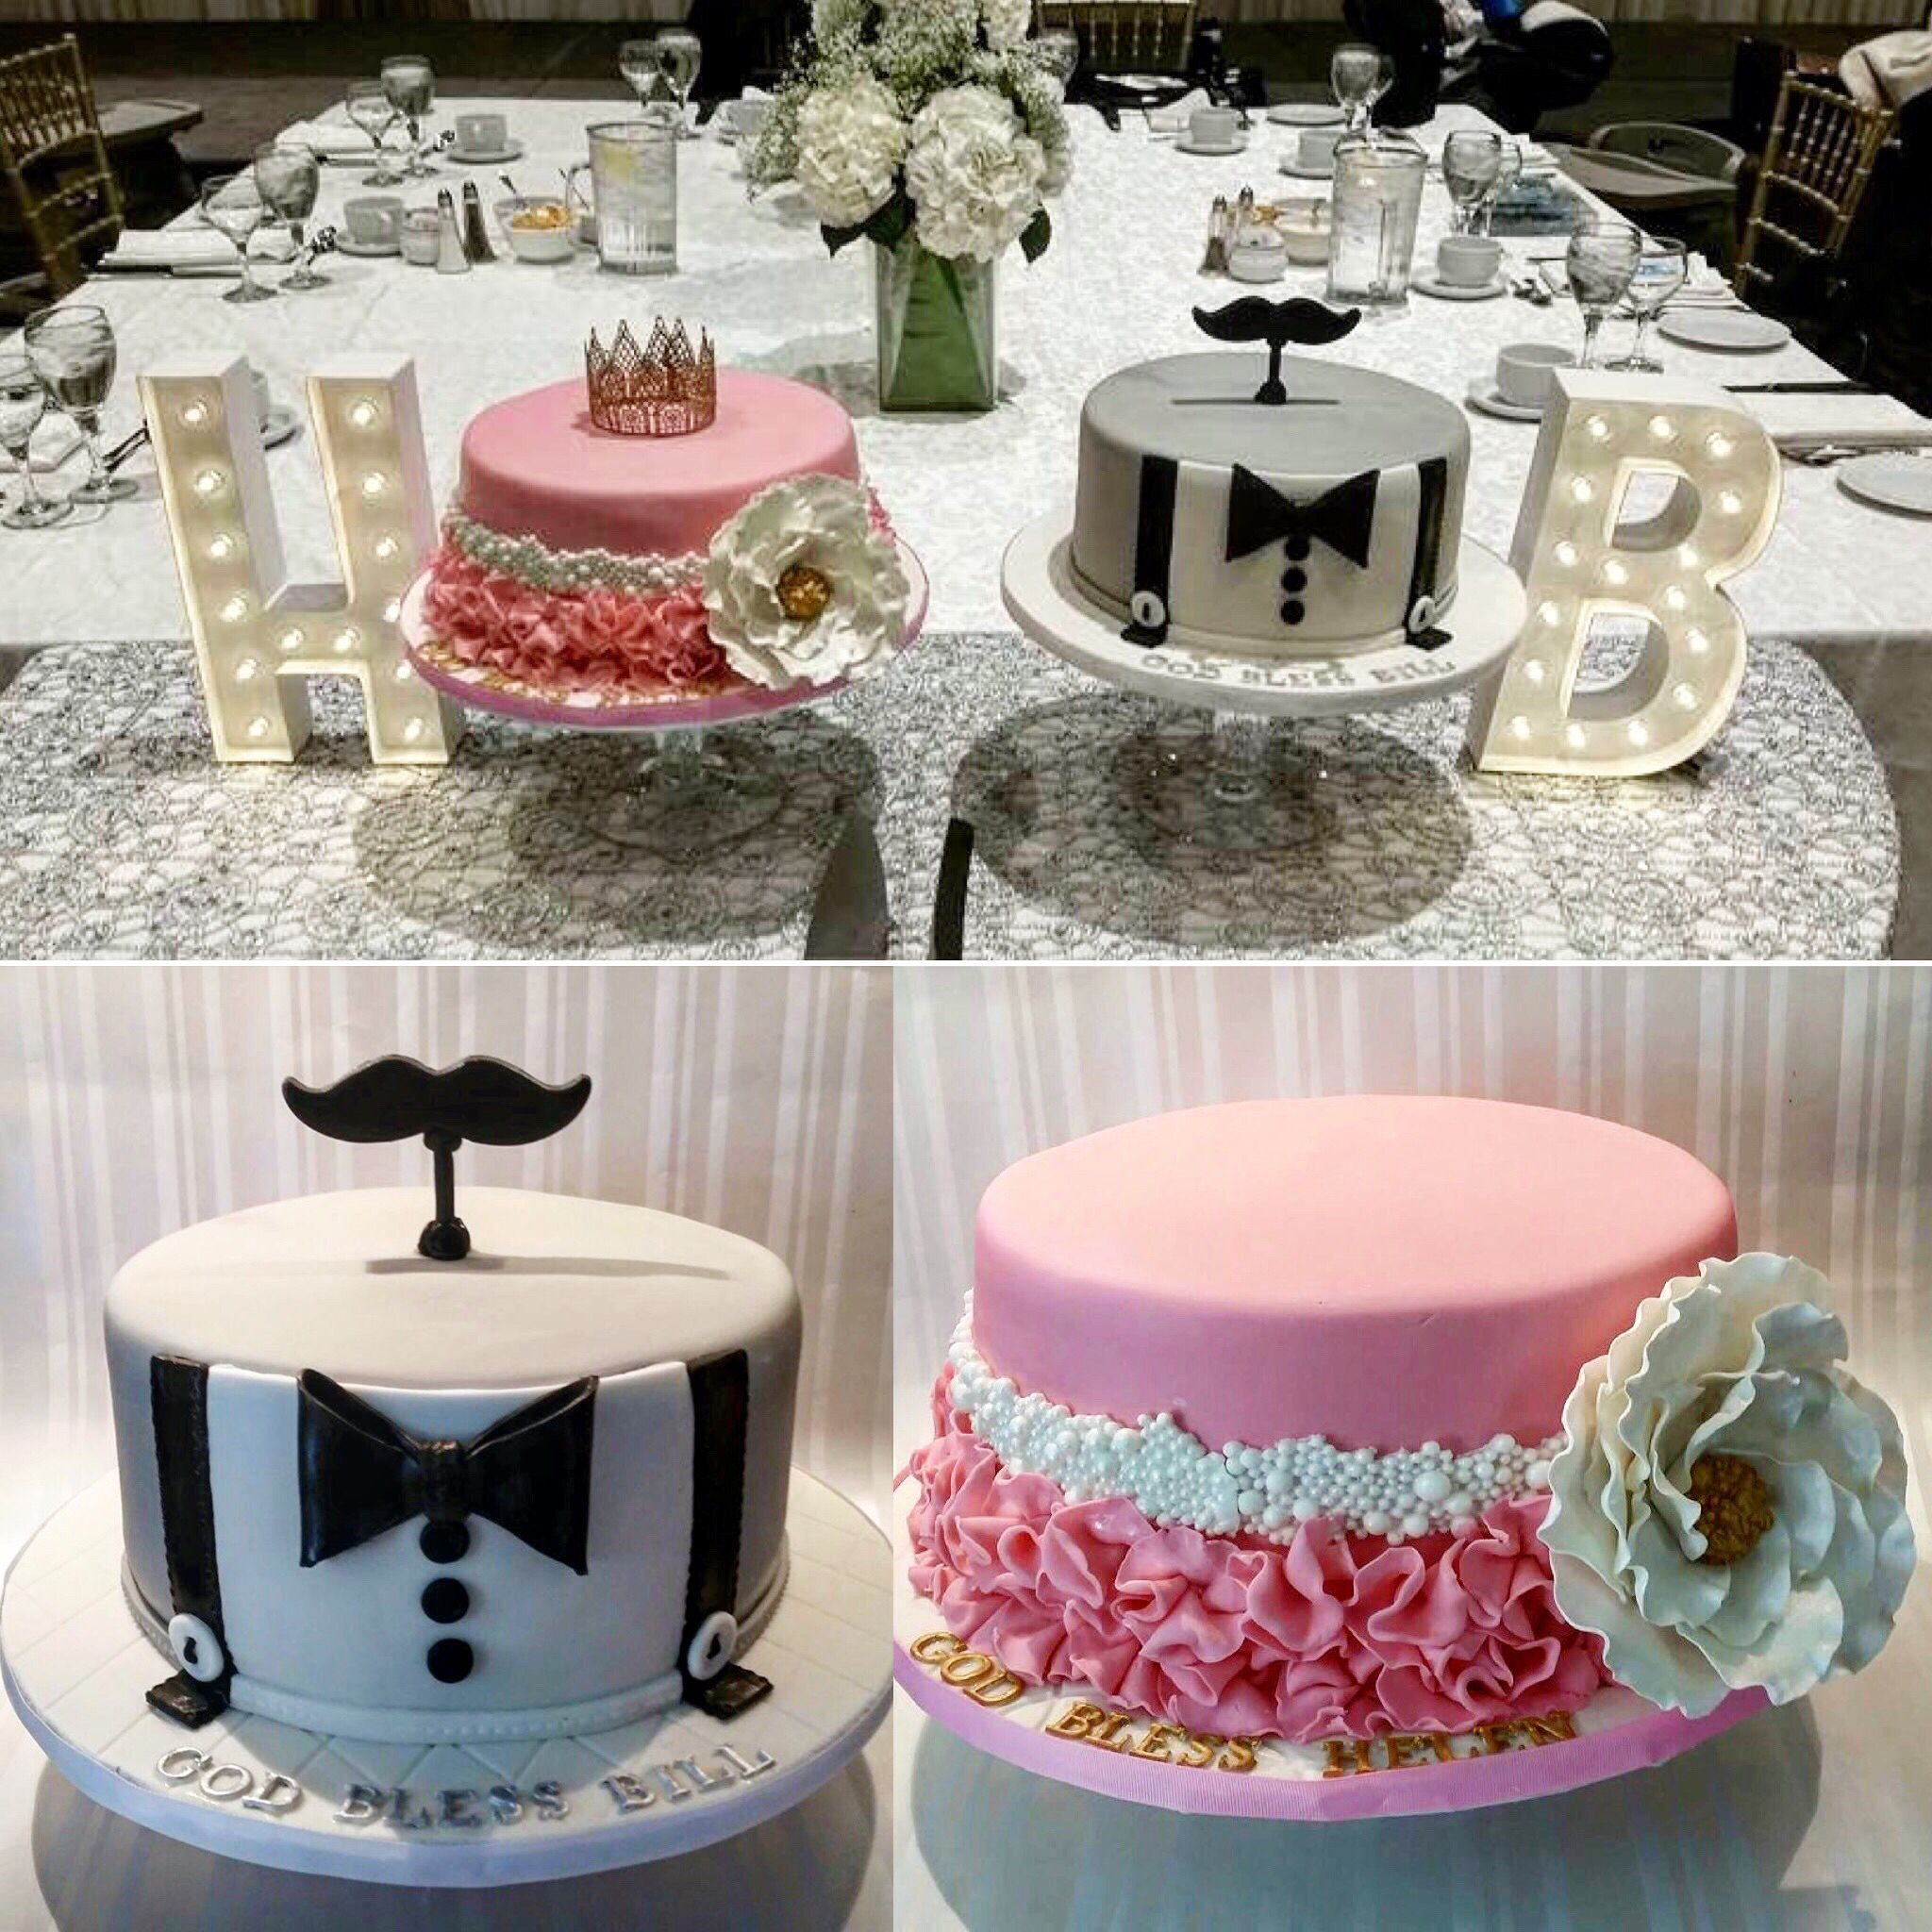 Despina Created Beautiful Cakes For A Christening